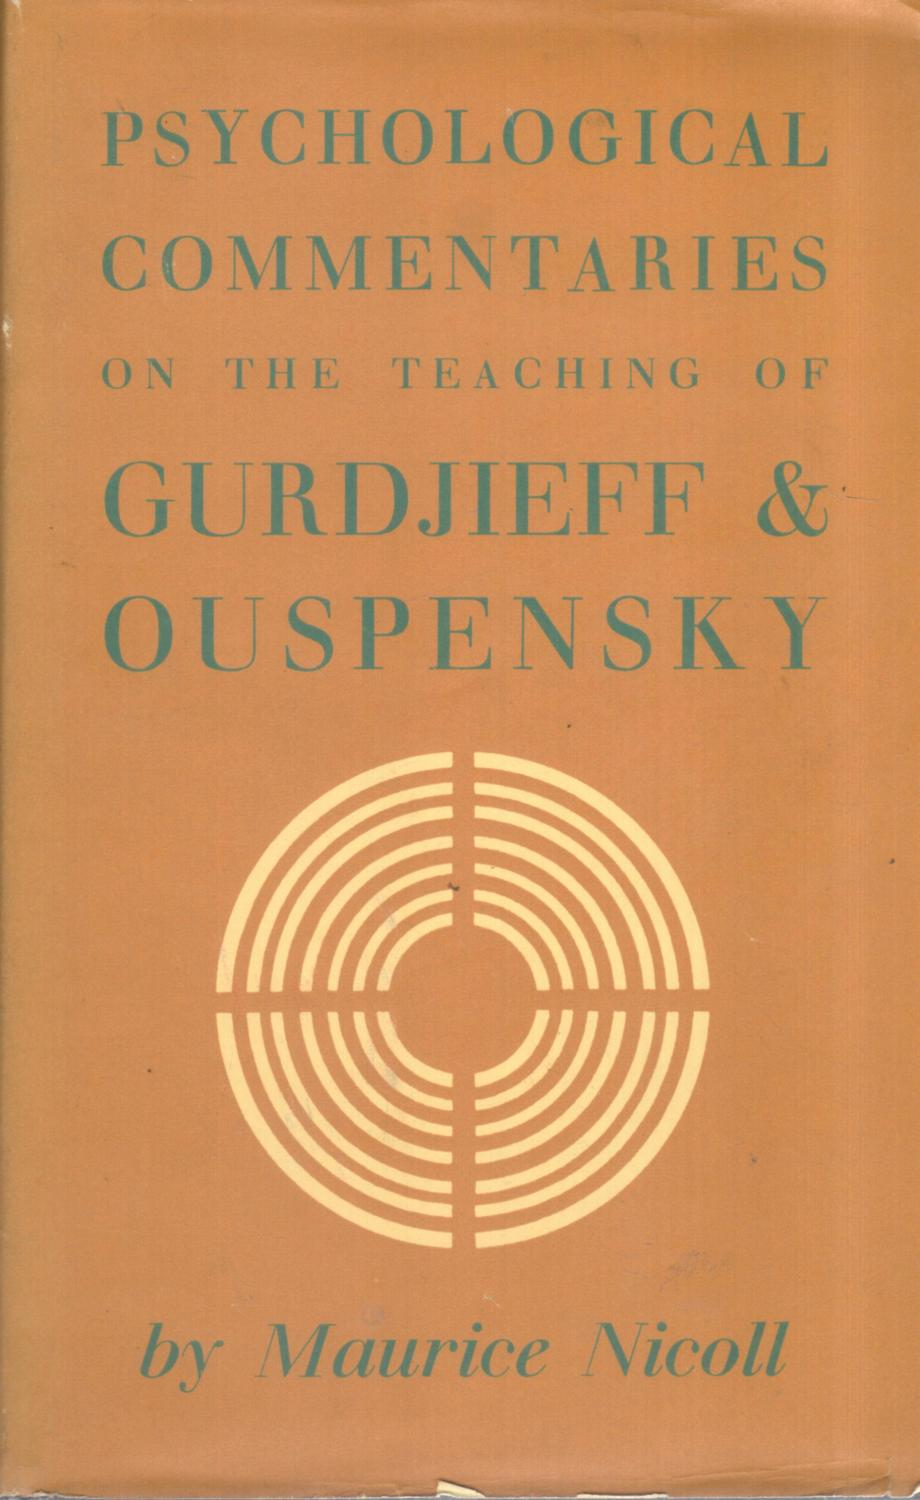 Psychological Commentaries - On the Teaching of GI Gurdjieff and PD Ouspensky - Vols. 1-5 MMaurice Nicoll Good Hardcover